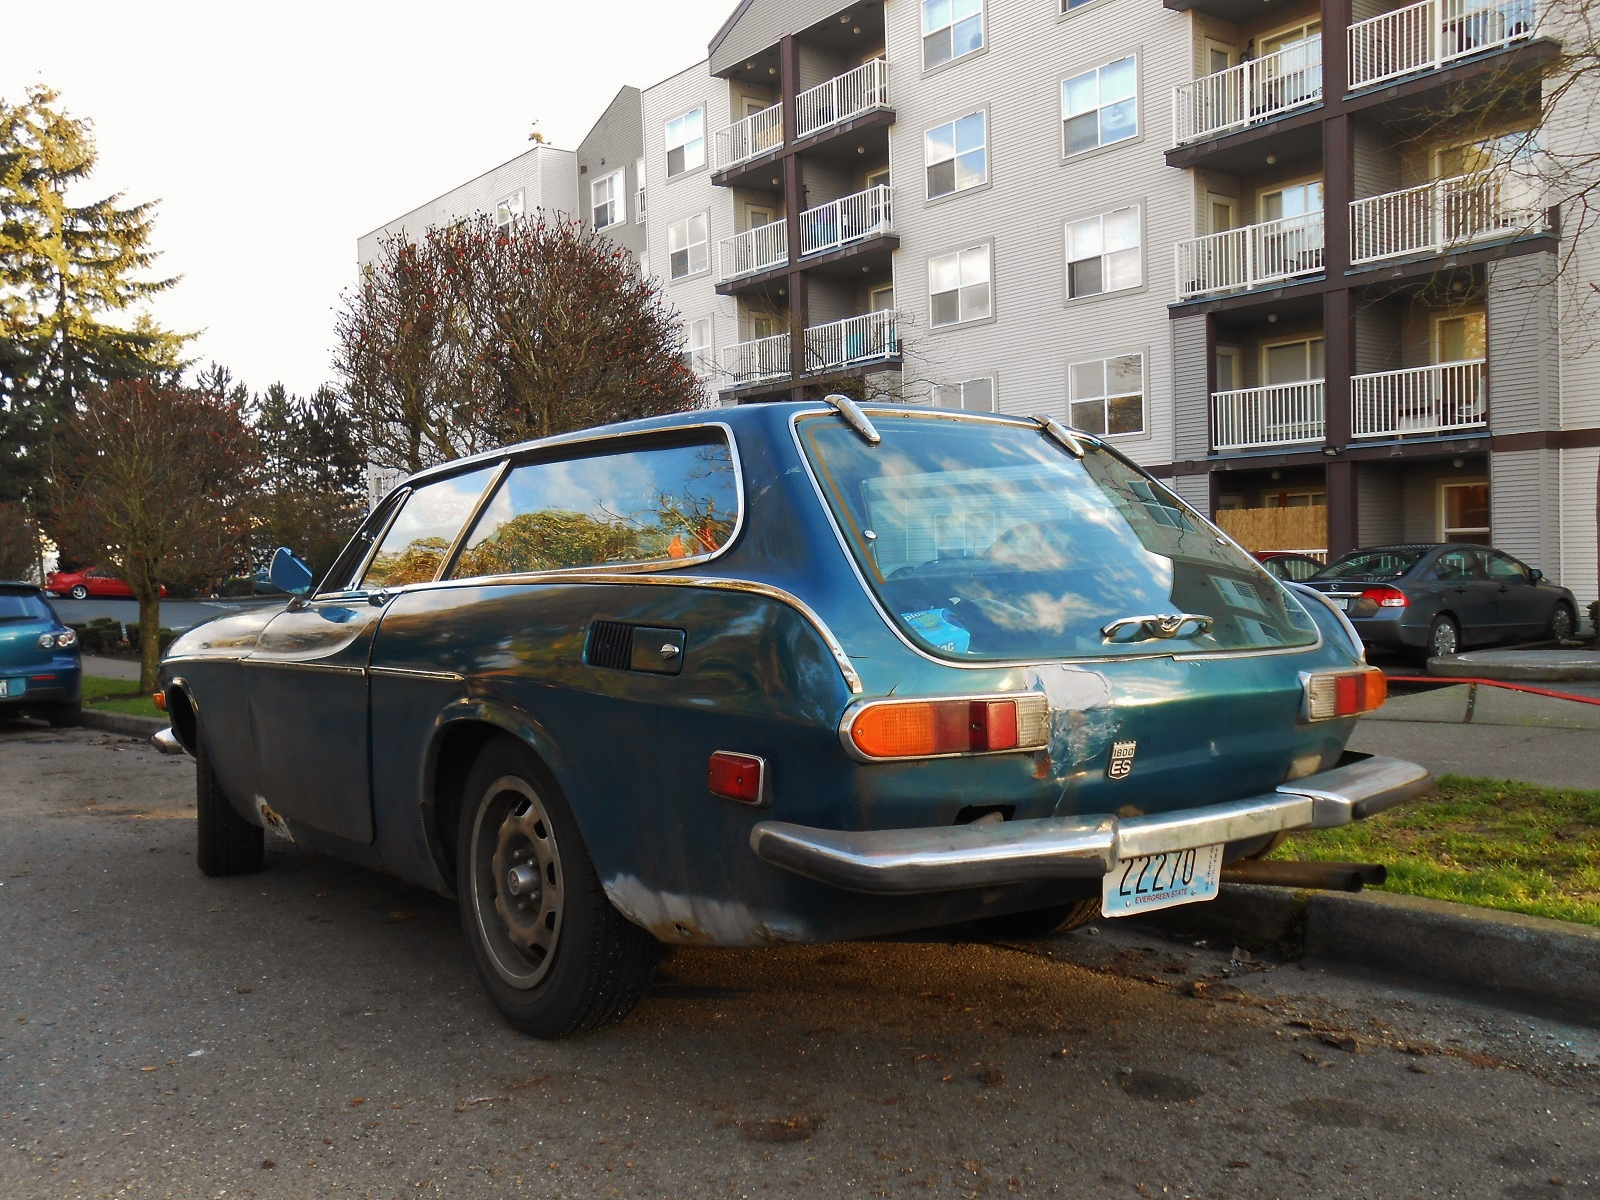 Seattles Parked Cars 1973 Volvo 1800ES